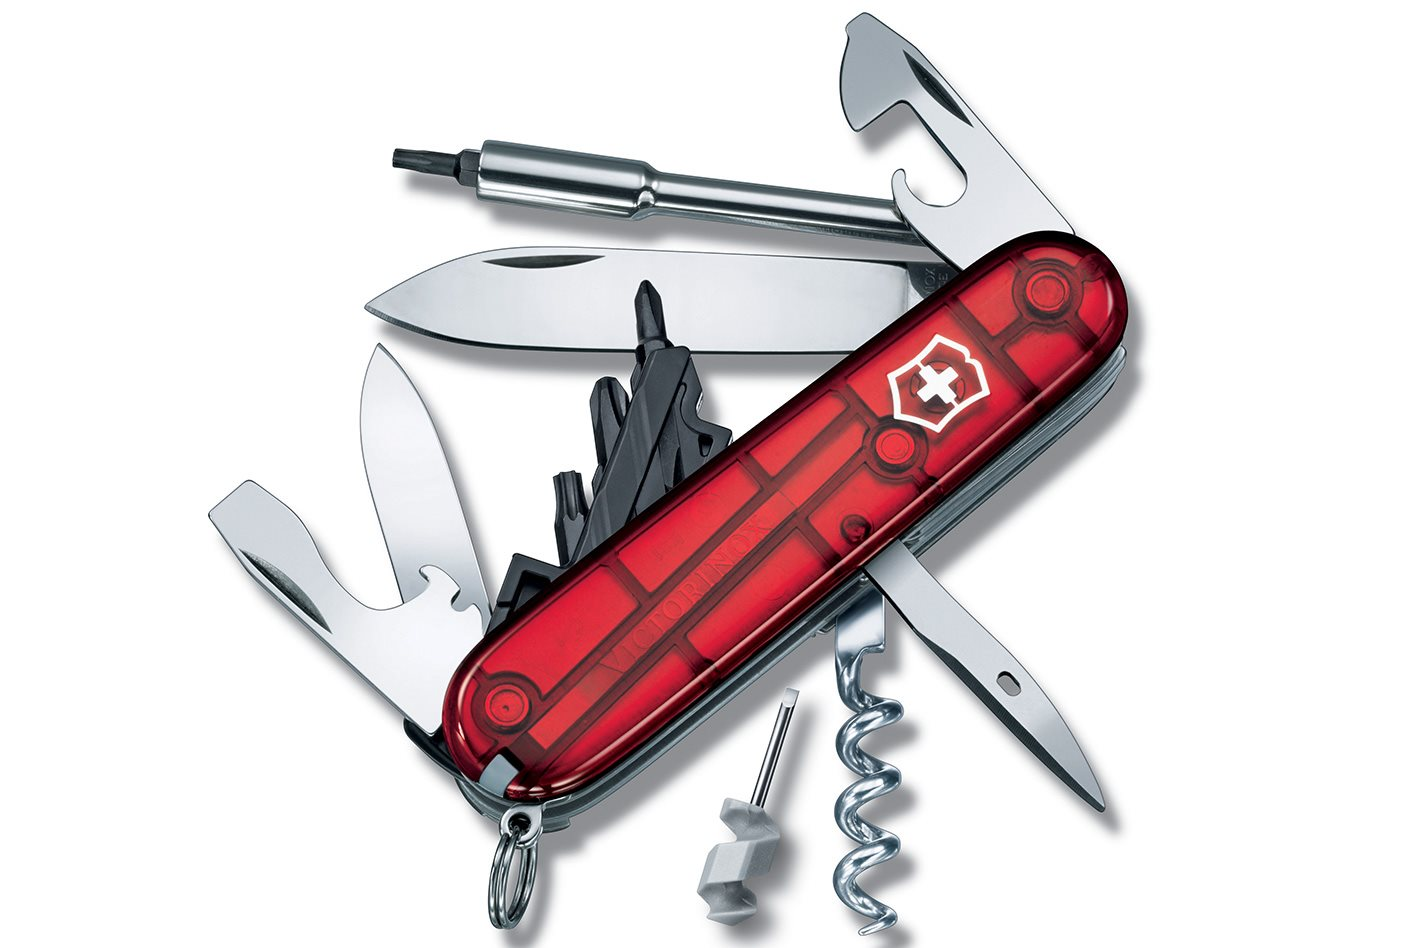 VICTORINOX SWISS ARMY KNIFE: CYBERTOOL S